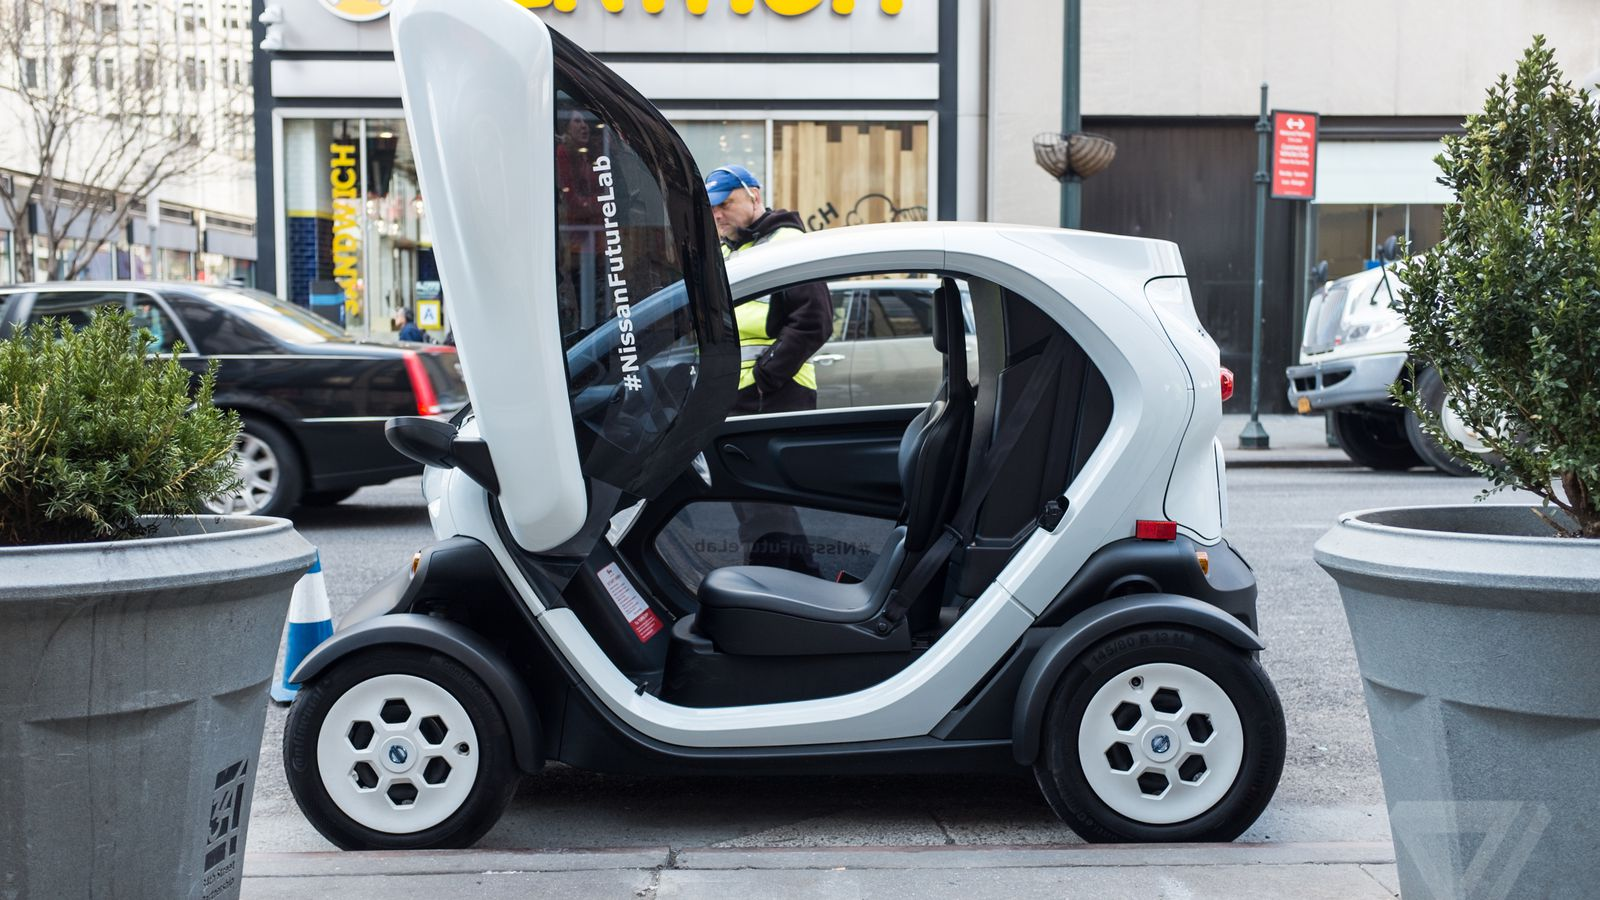 This tiny electric car could be the future of urban transportation ...